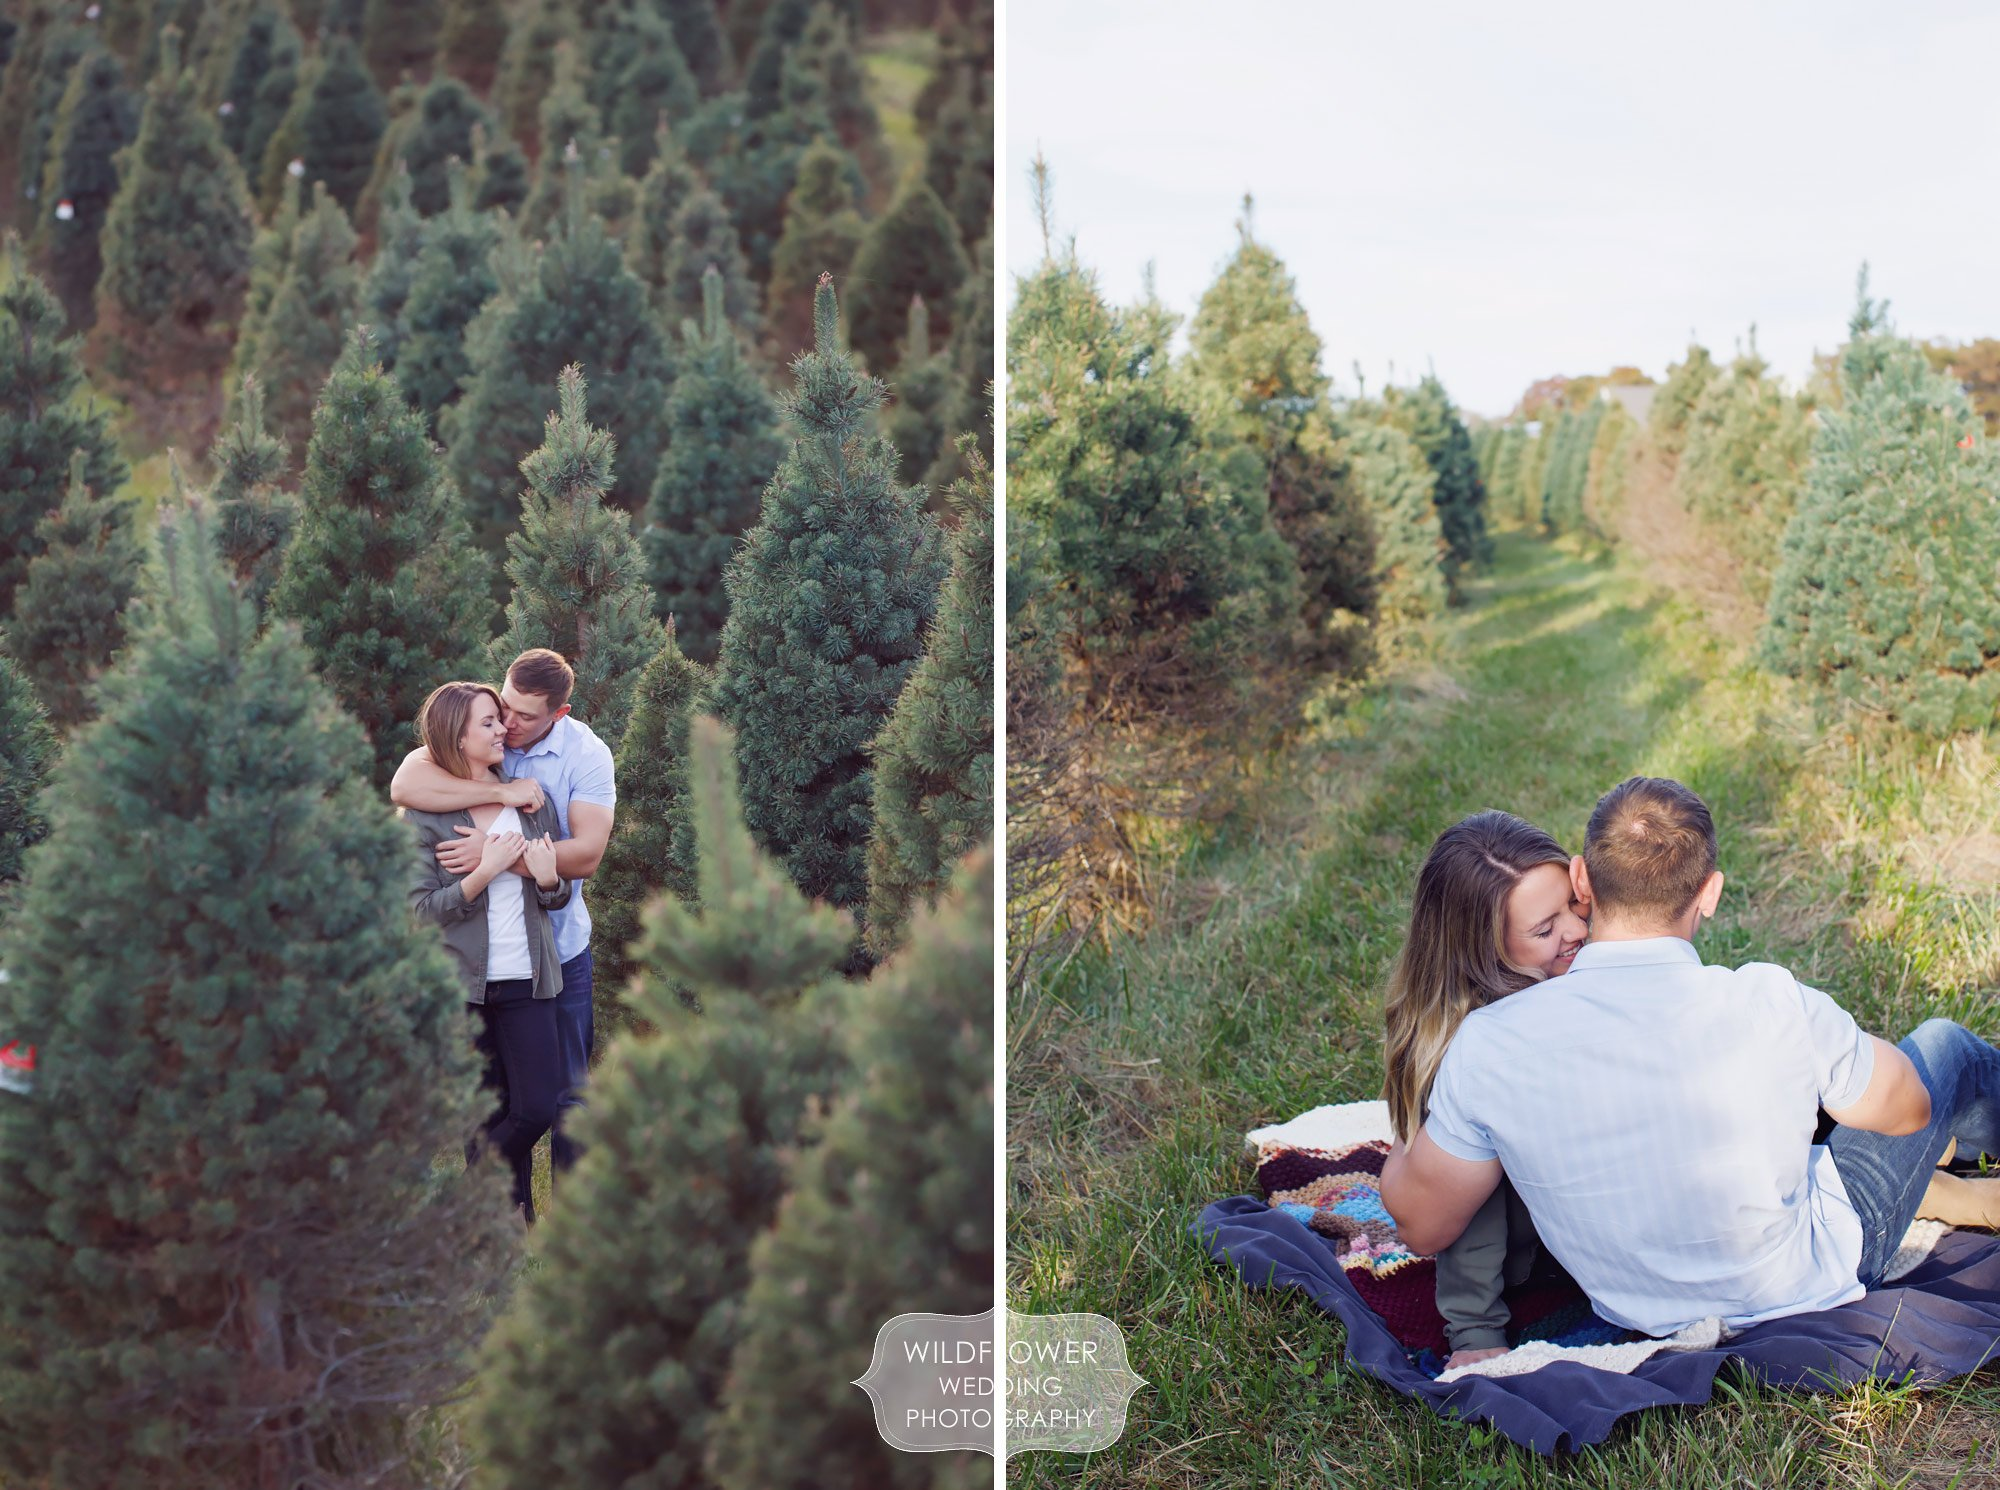 Rustic engagement photography session at the Timberview Tree Farm in Columbia, MO.